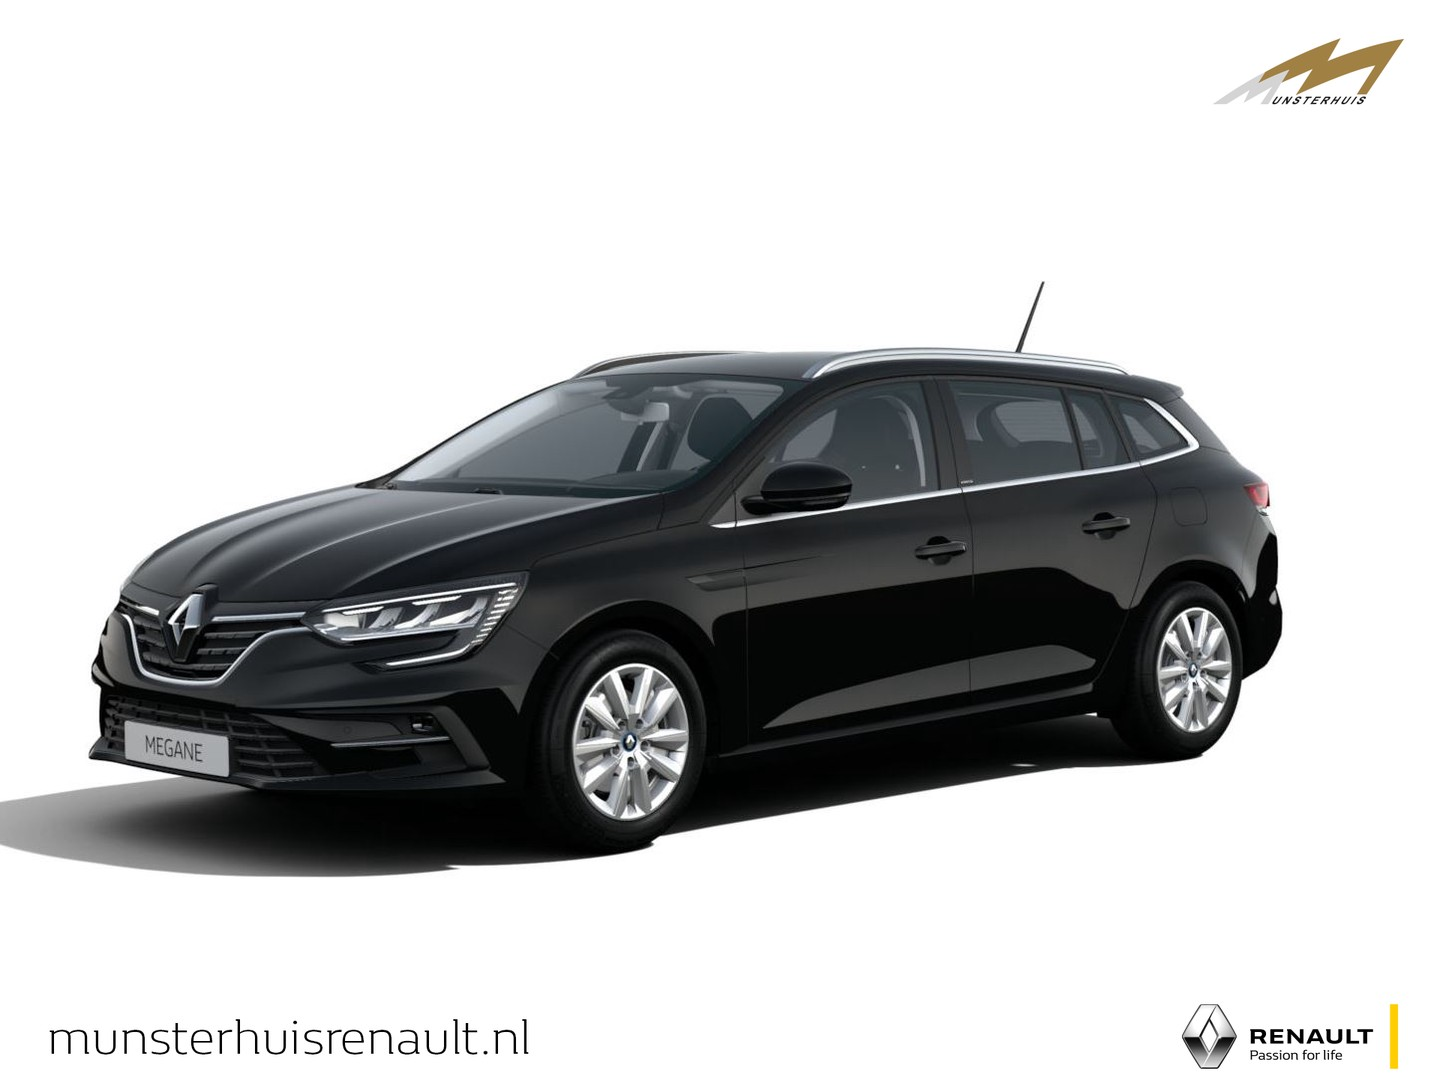 Renault Mégane Estate plug-in hybrid 160 business zen - nieuw - hybride